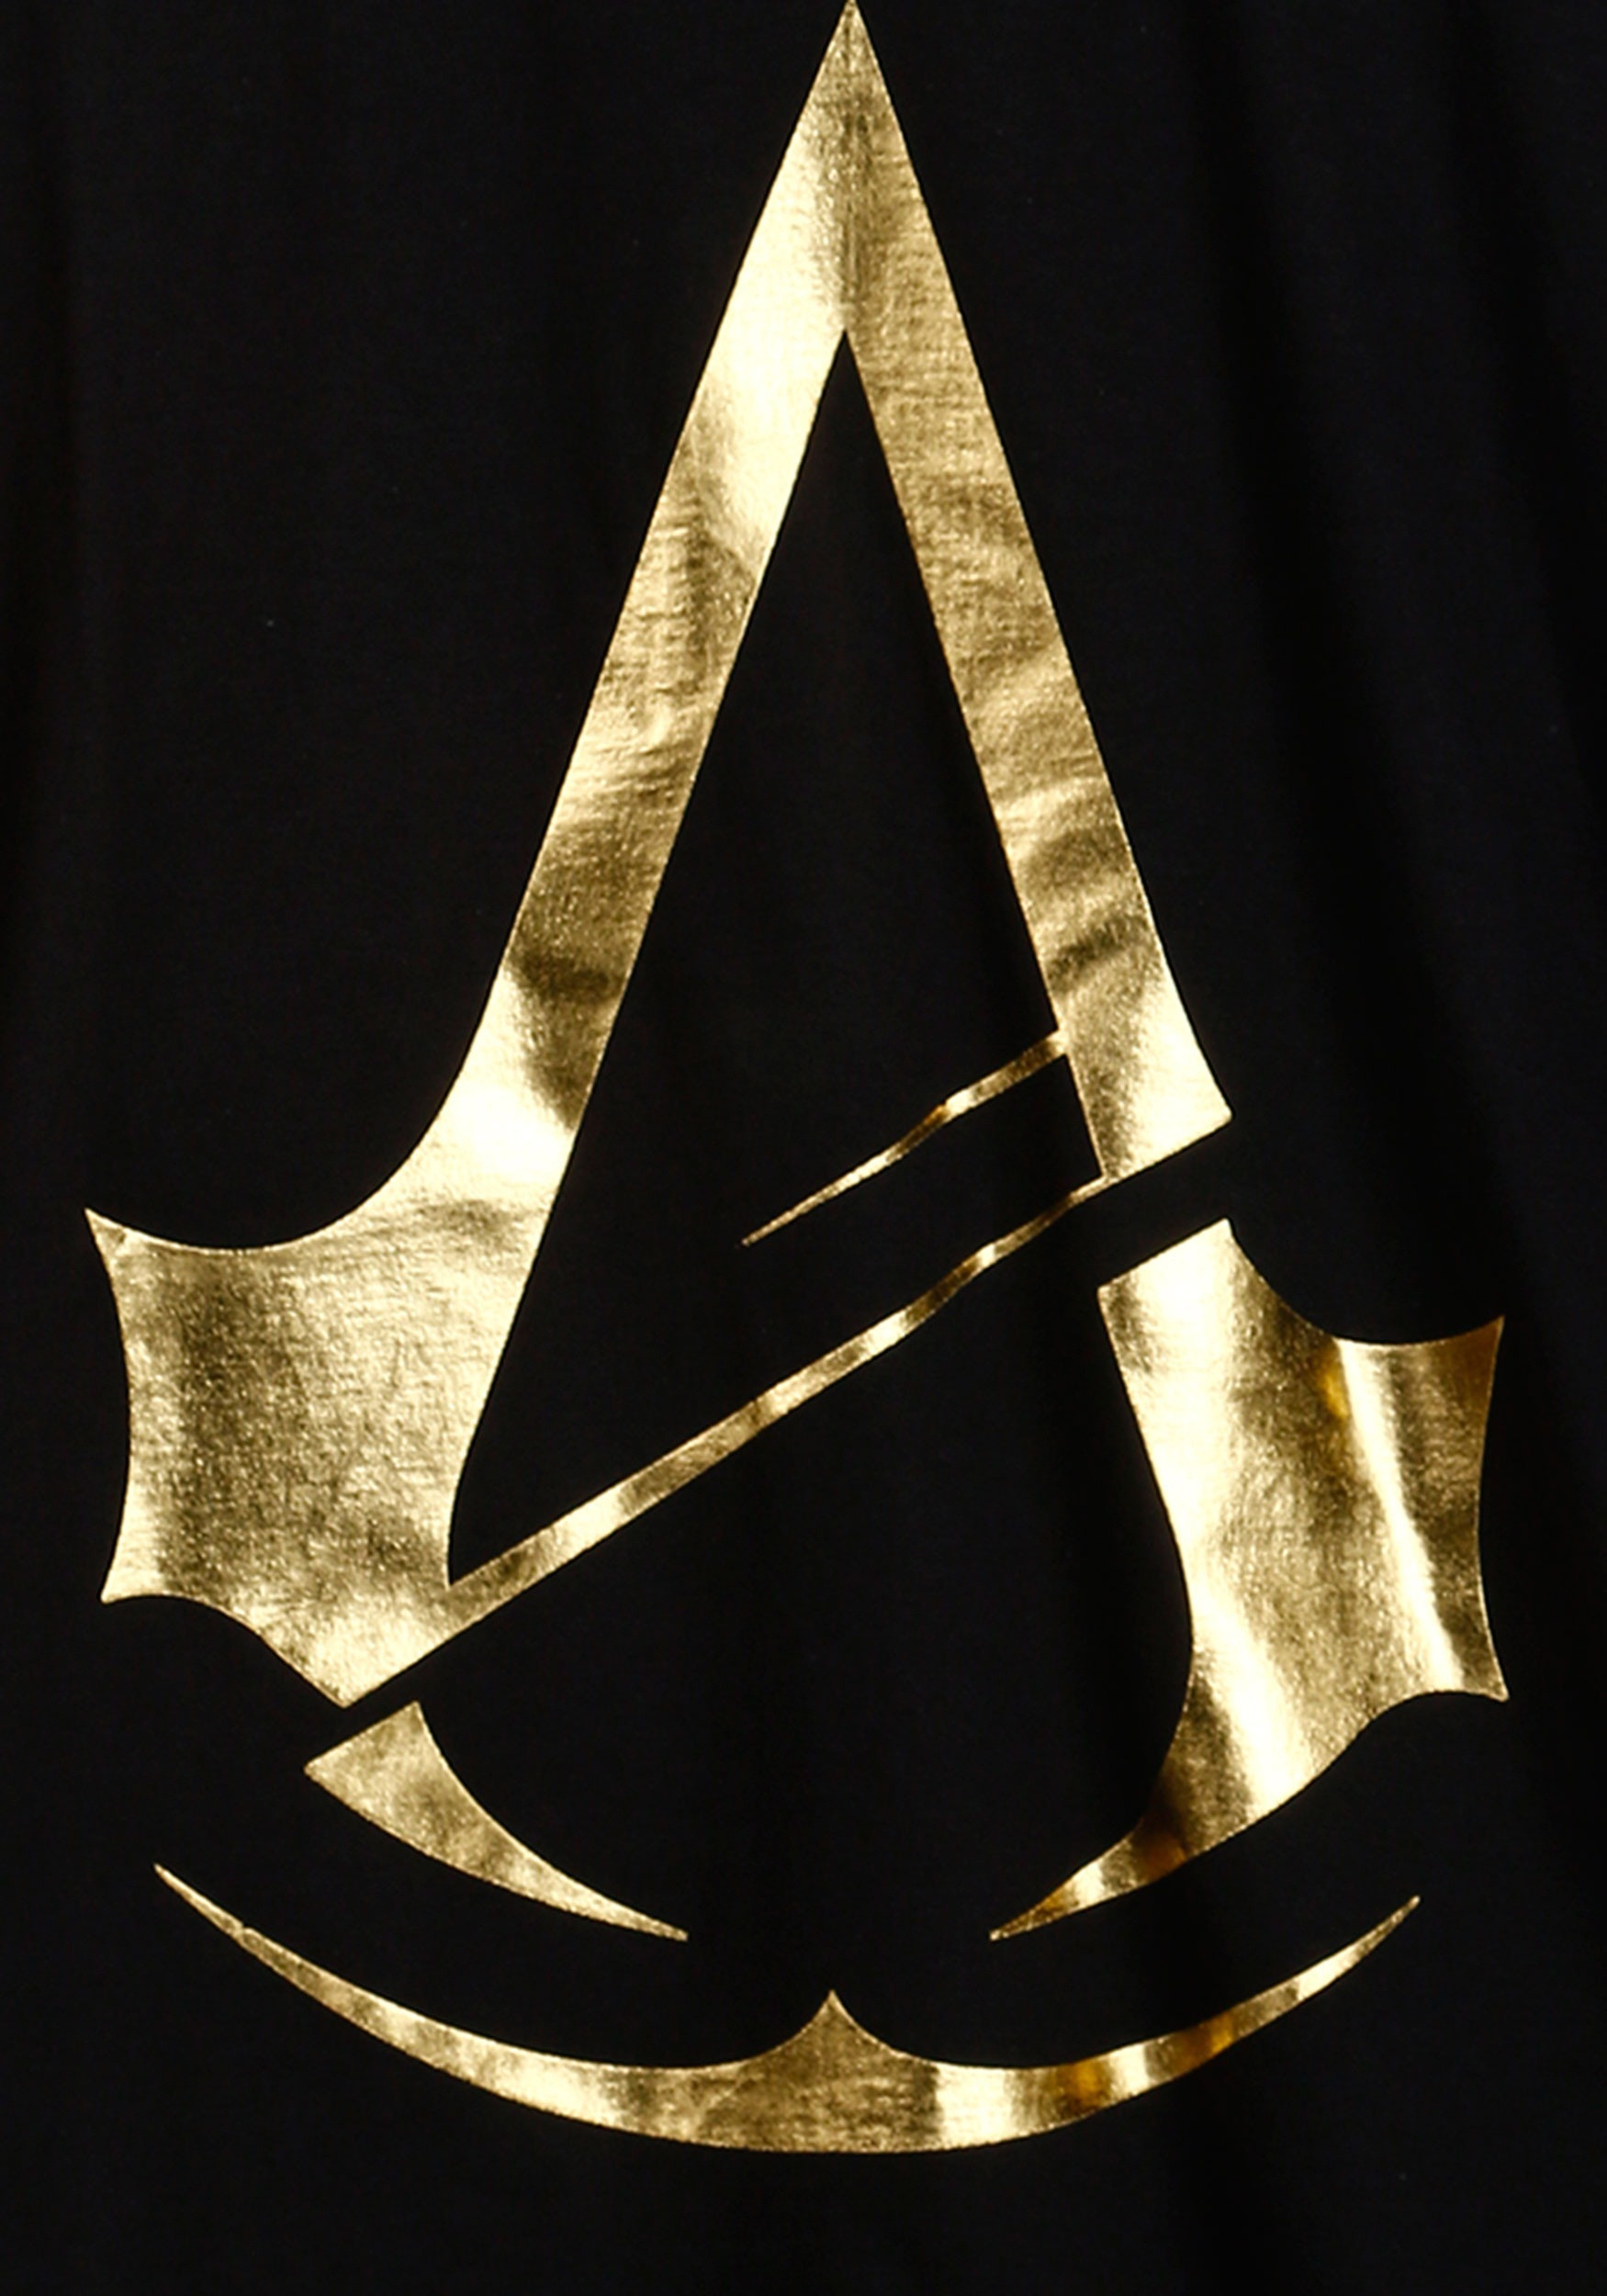 https://0901.nccdn.net/4_2/000/000/089/ba9/assassins-creed-gold-foil-mens-t-shirt2-1750x2500.jpg